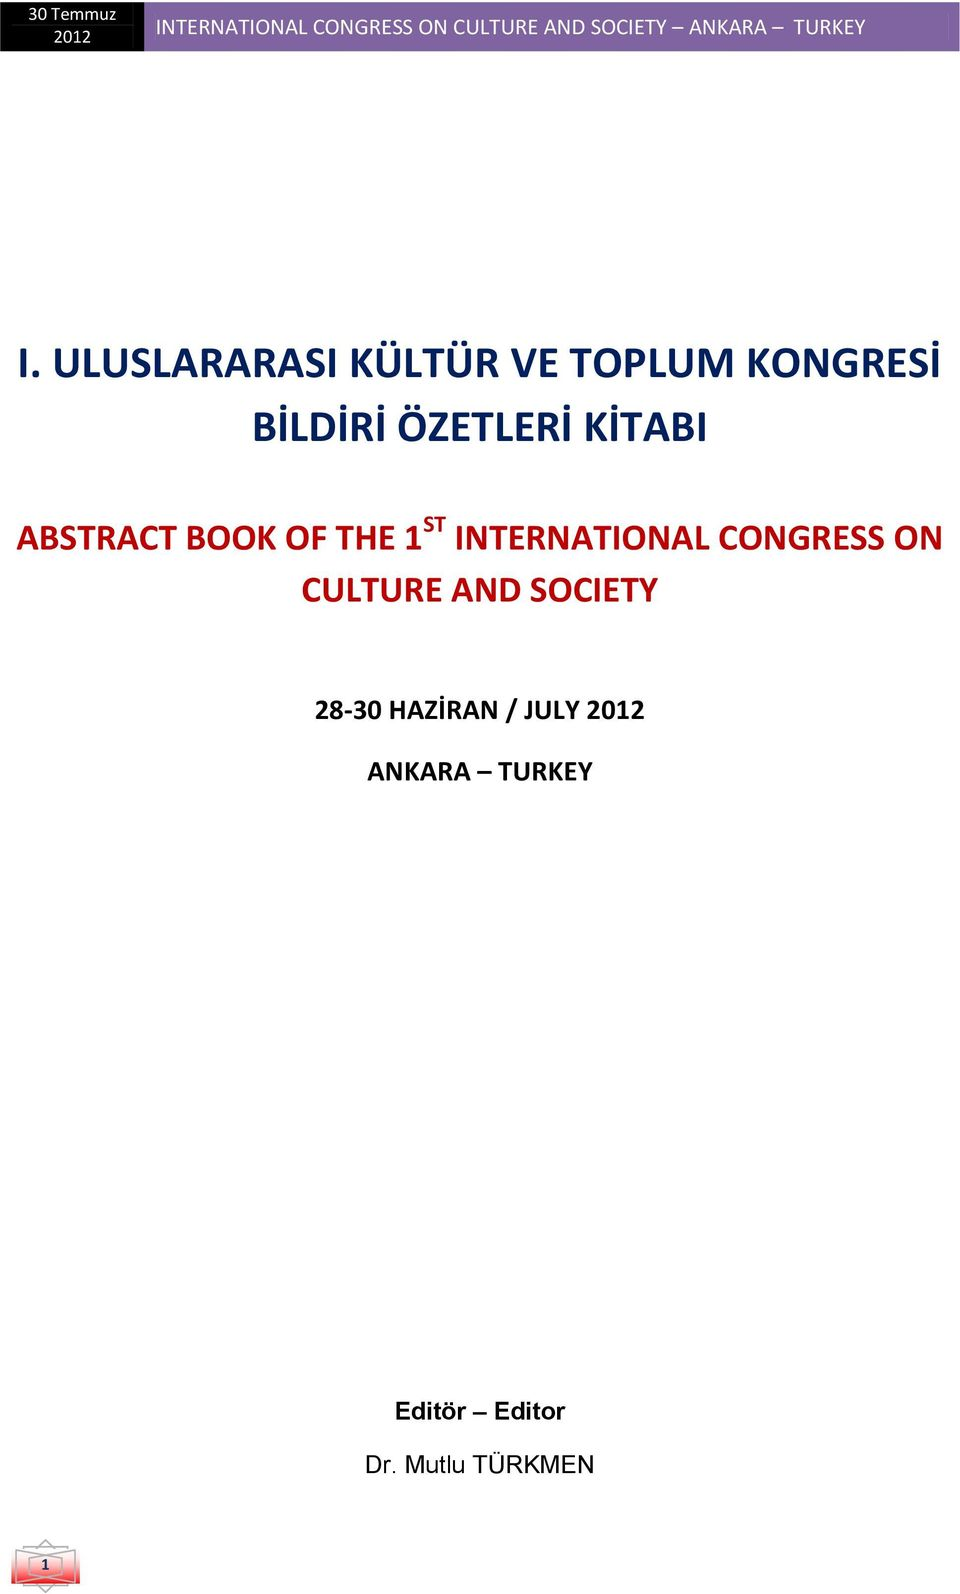 ABSTRACT BOOK OF THE 1 ST INTERNATIONAL CONGRESS ON CULTURE AND